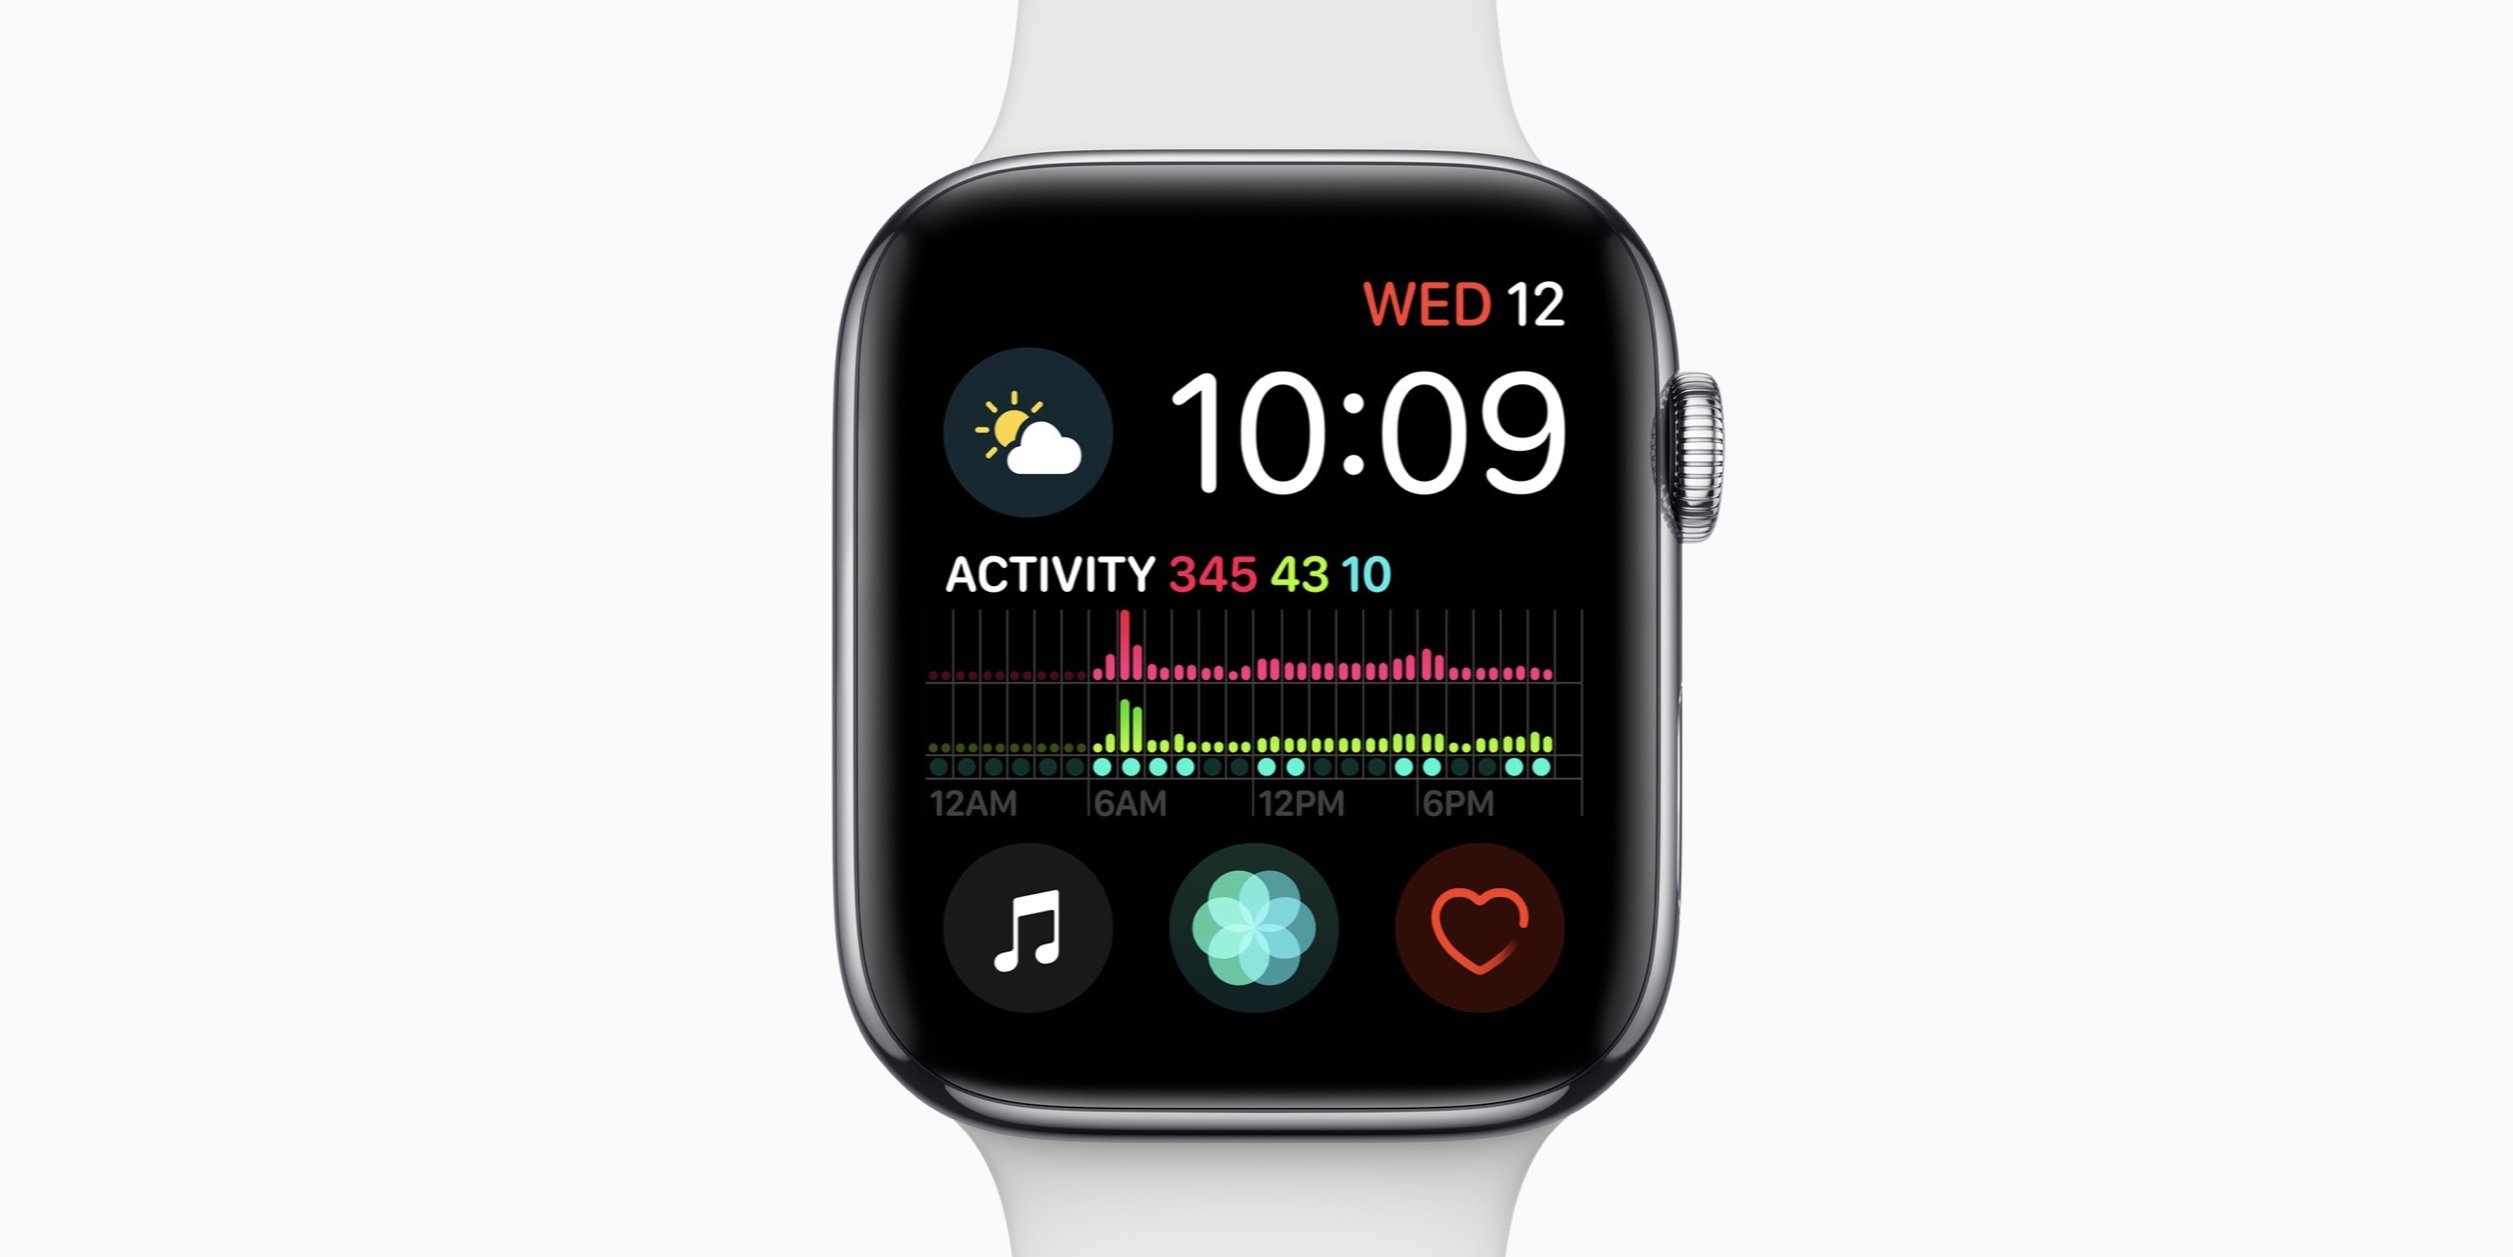 Apple Watch DST bug